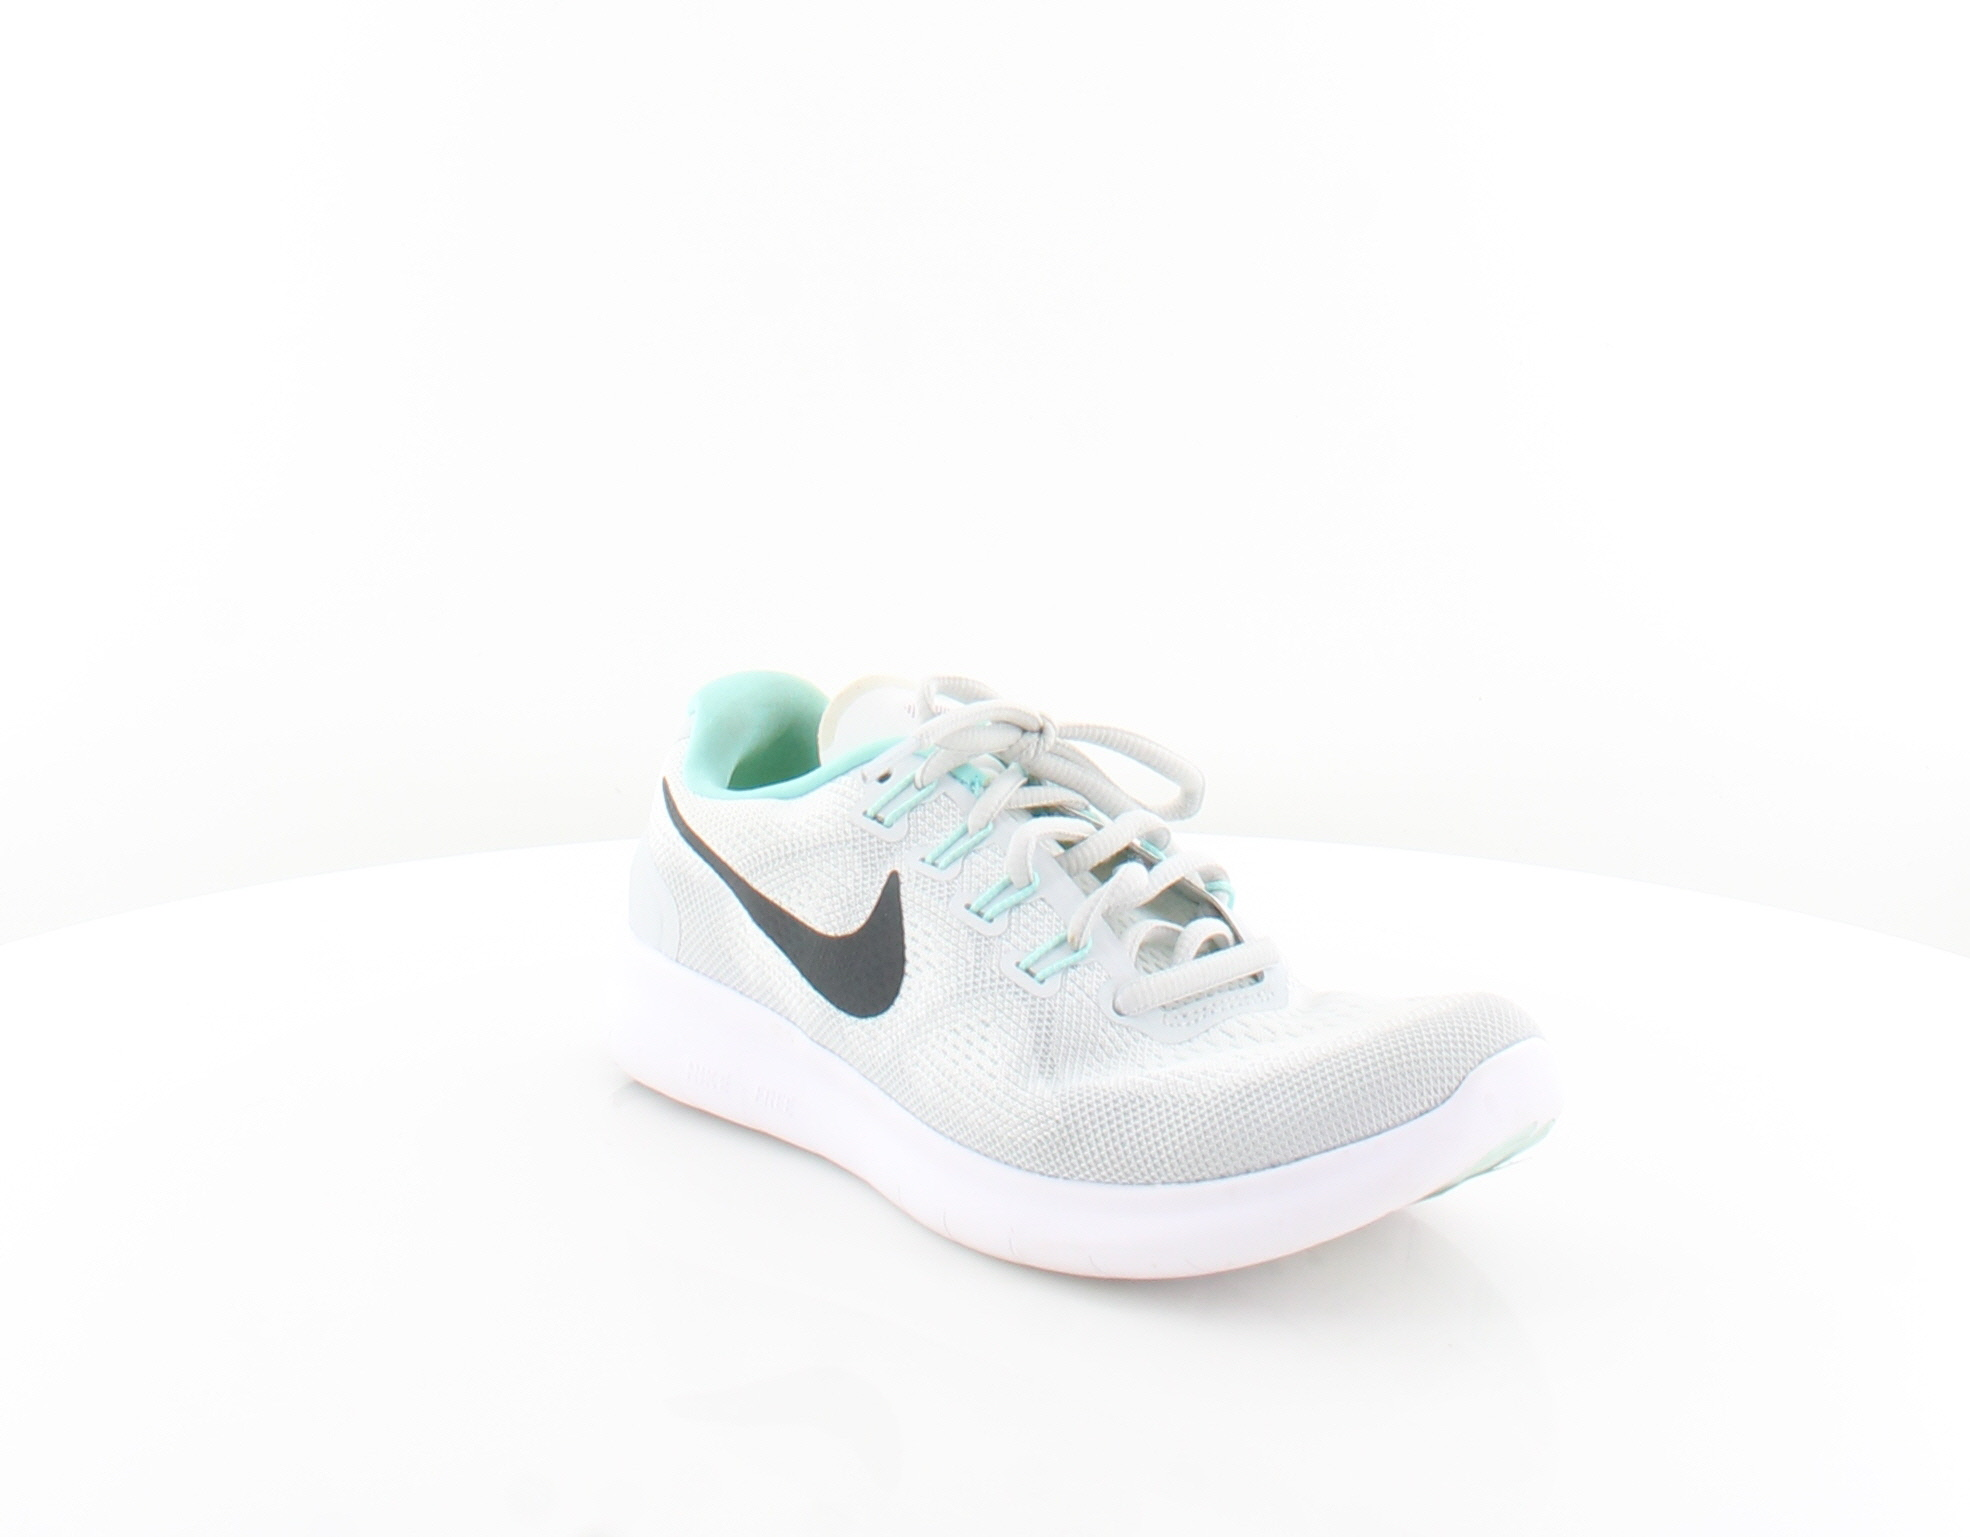 online store a9b3a 29398 Details about Nike Free Run 2 Gray Womens Shoes Size 6.5 M Athletic MSRP  $100